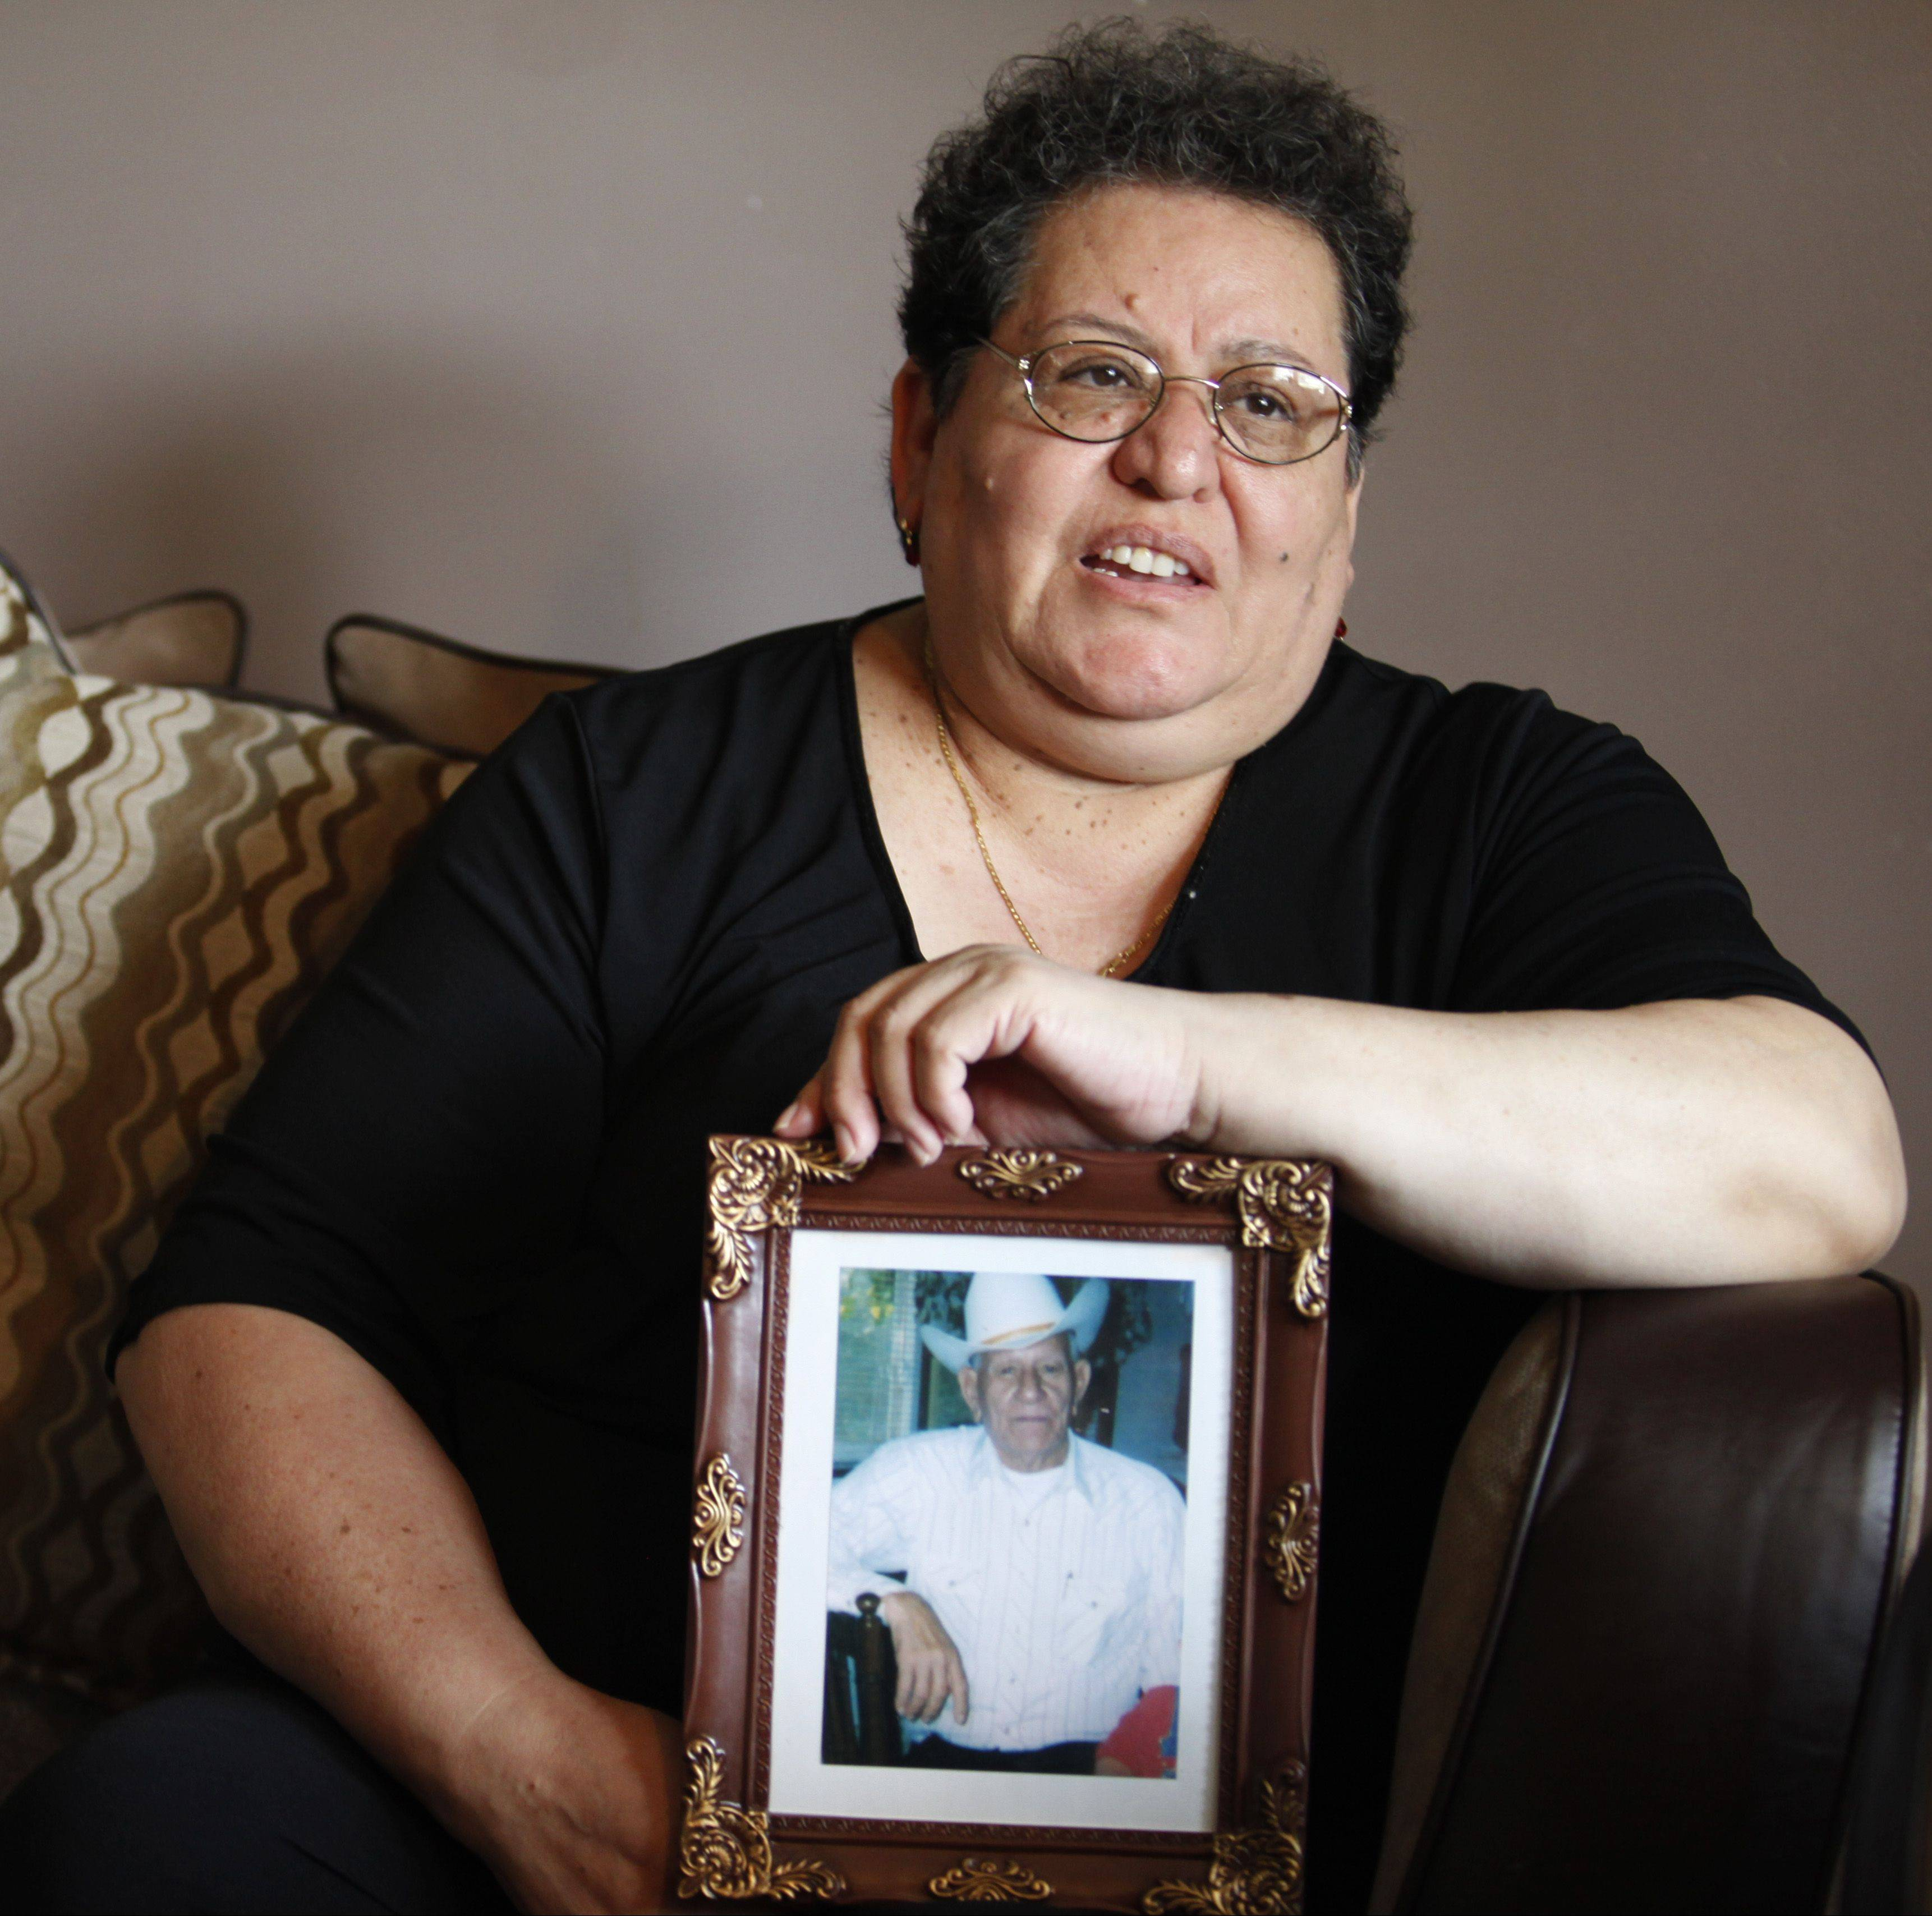 Maria Prieto, of Elgin, lost her husband, Andres, shown in the picture, last fall. A social worker and chaplain joined nurses from VITAS Innovative Hospice Care to help the Prieto family during Andres' final months.